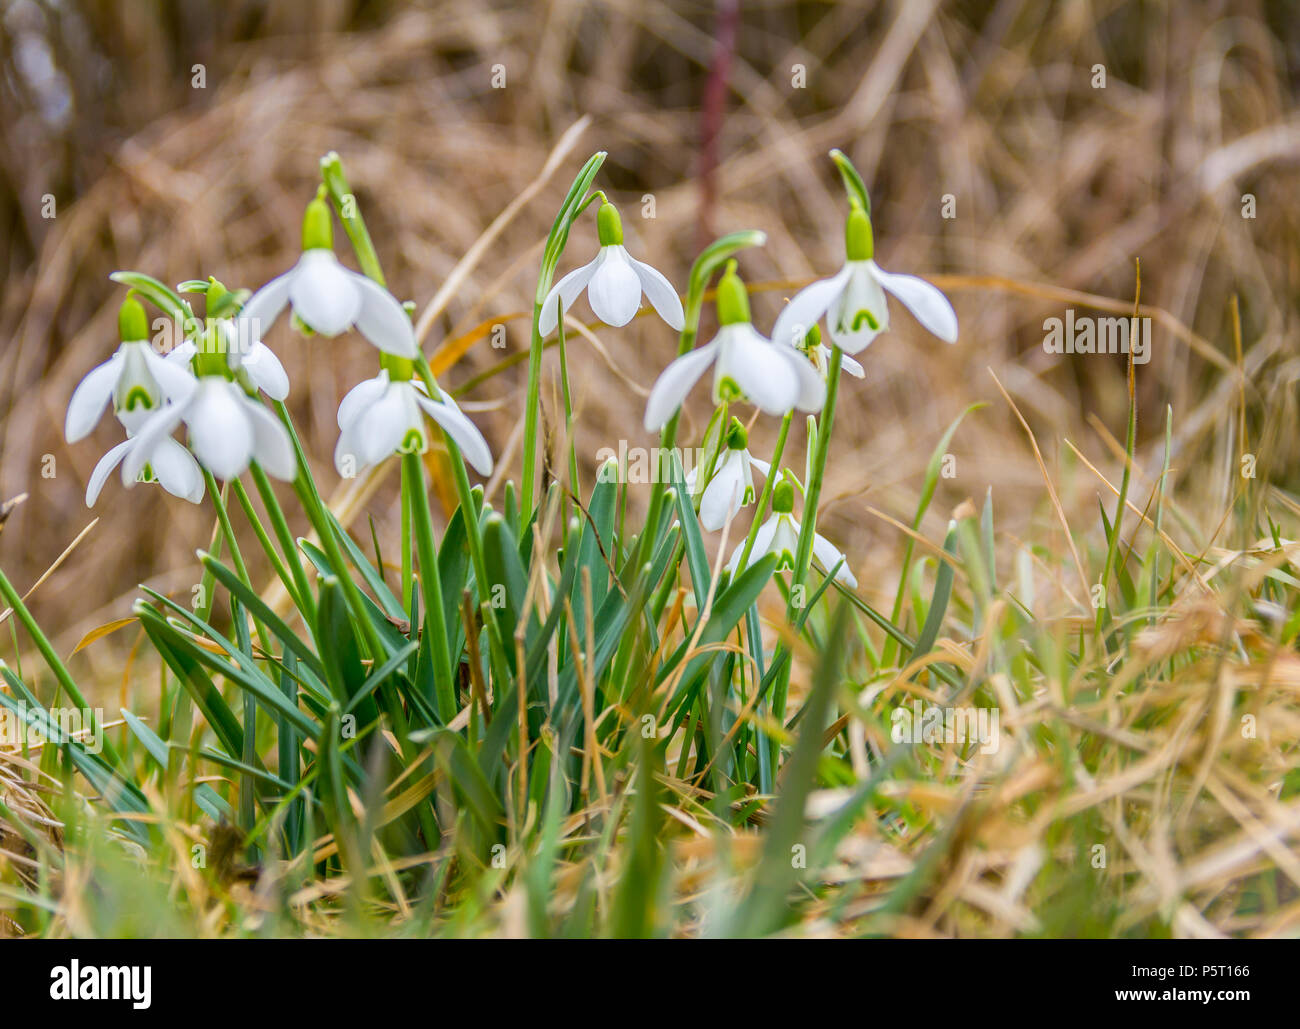 low angle shot of some abloom snowdrop flowers Stock Photo